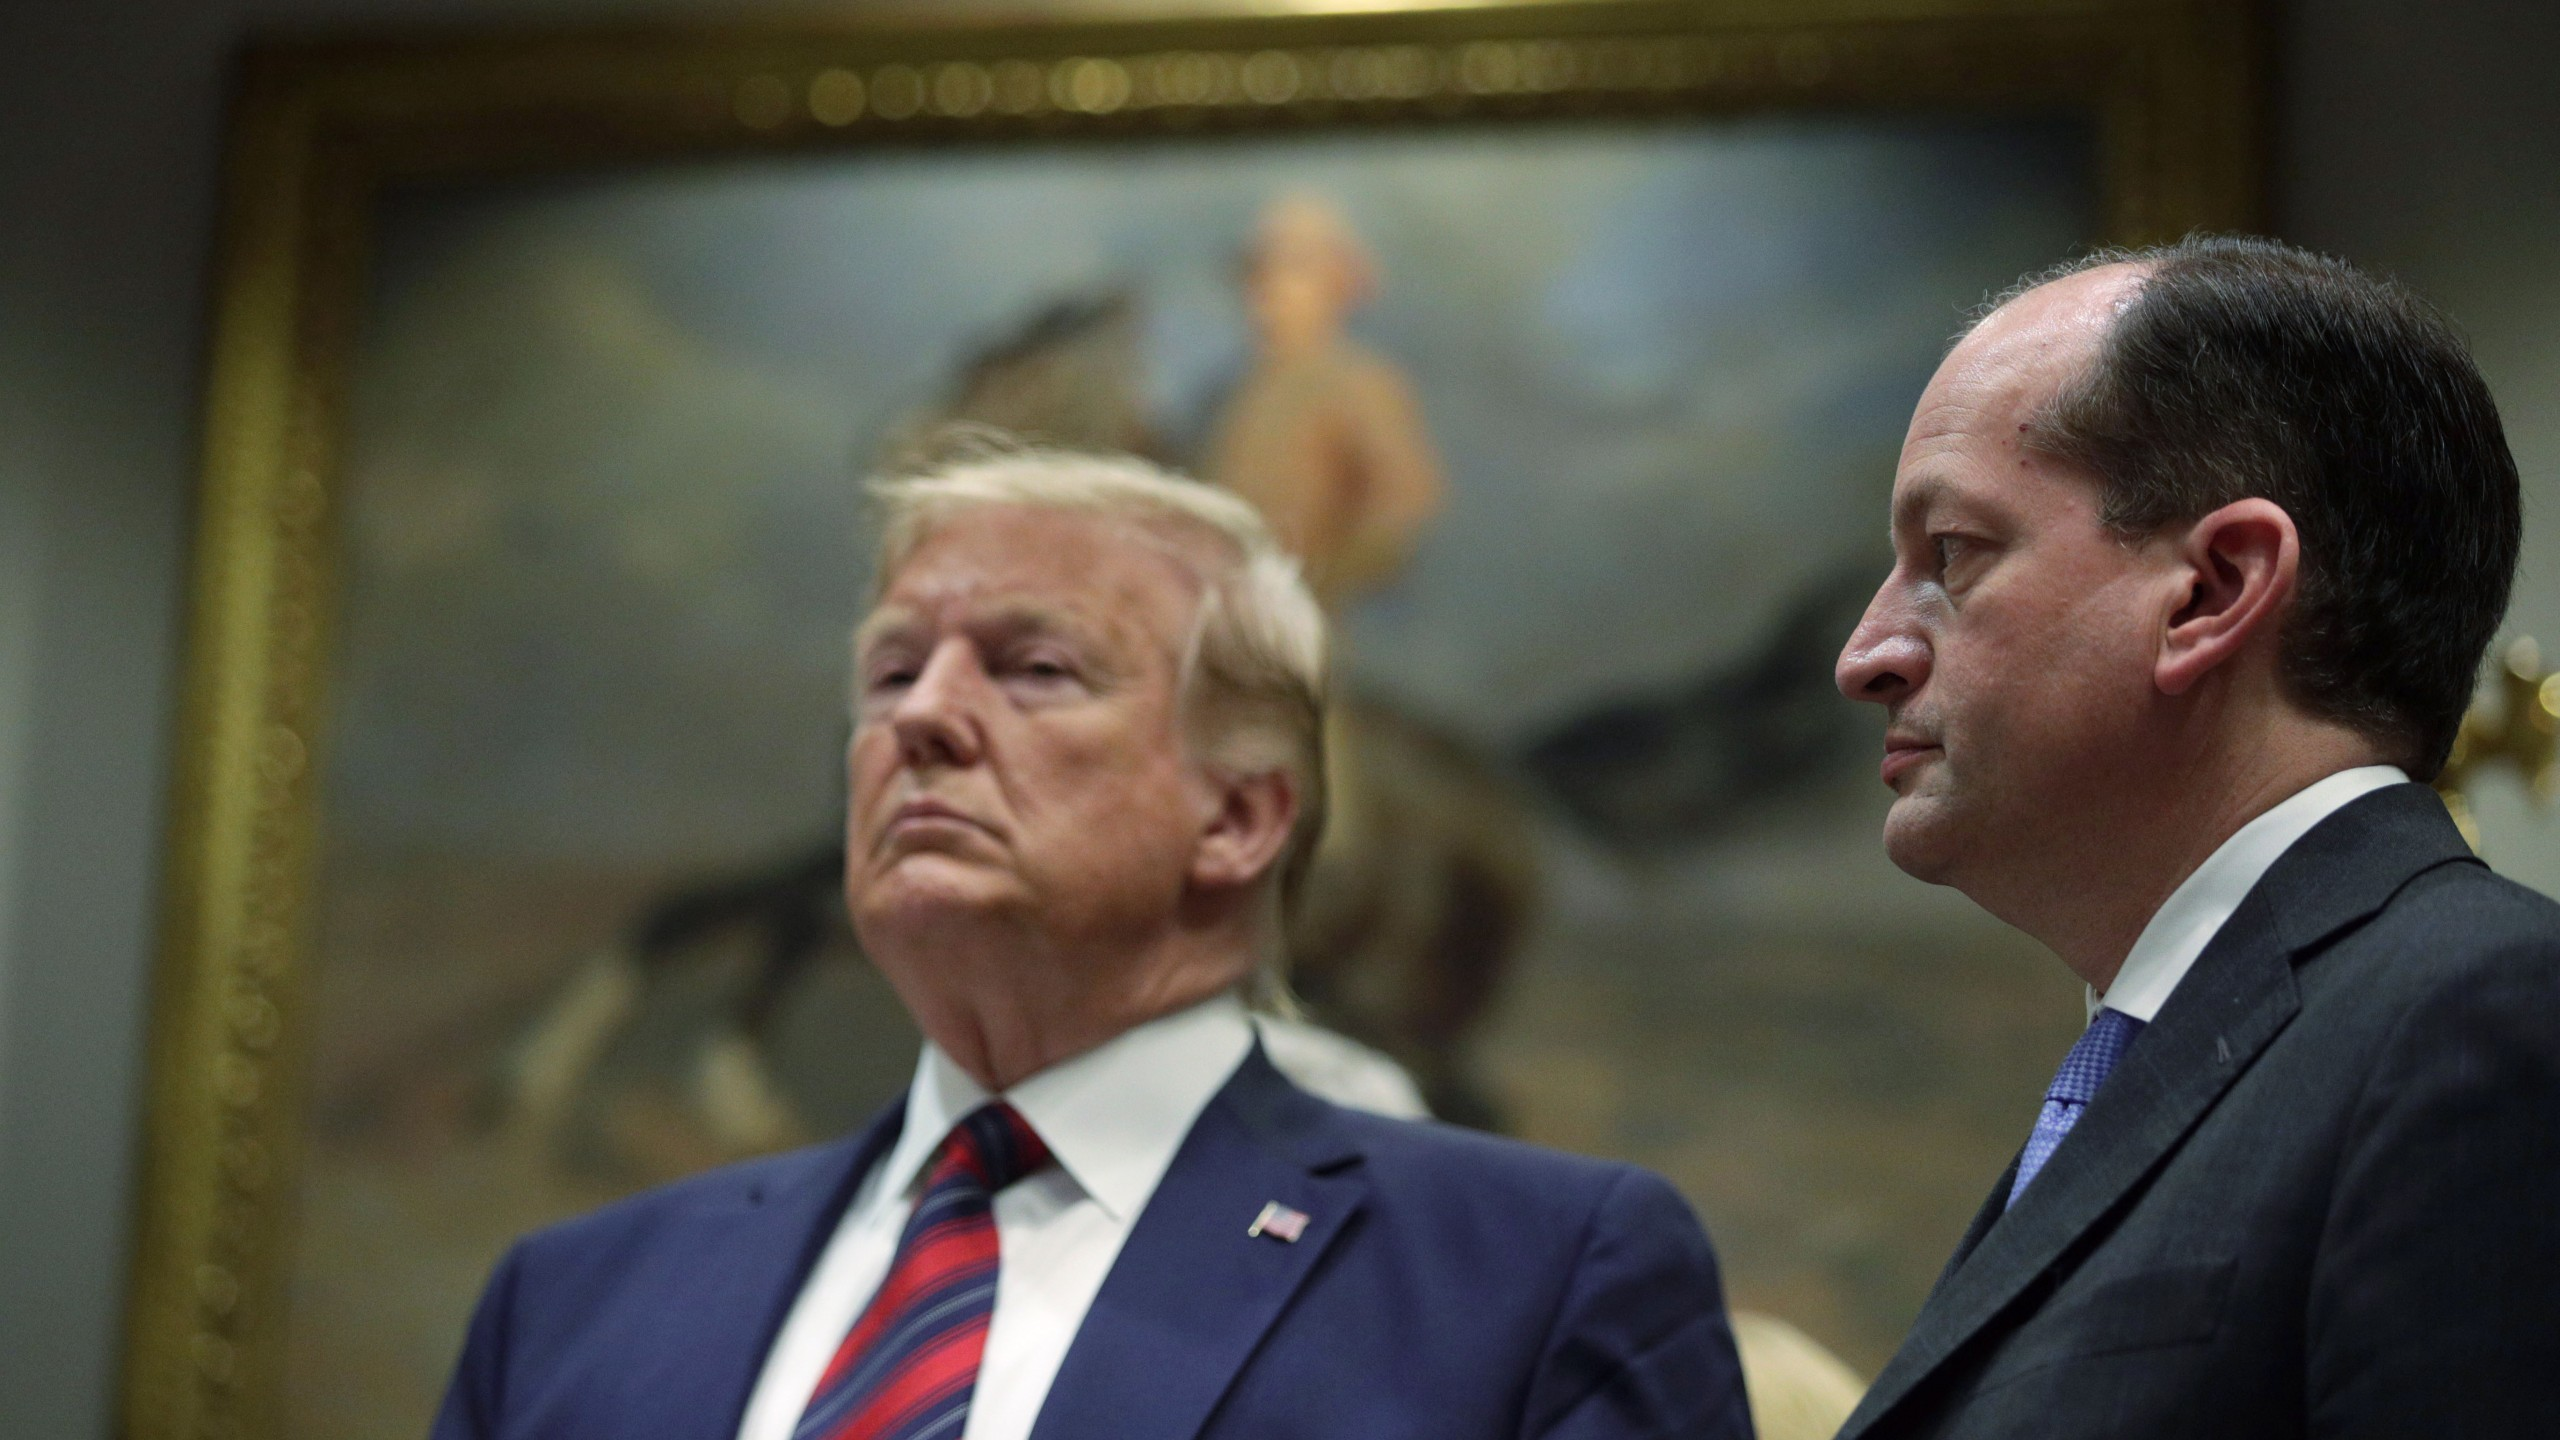 Donald Trump and Secretary of Labor Alexander Acosta listen during a Roosevelt Room event at the White House on May 9, 2019. (Credit: Alex Wong/Getty Images)